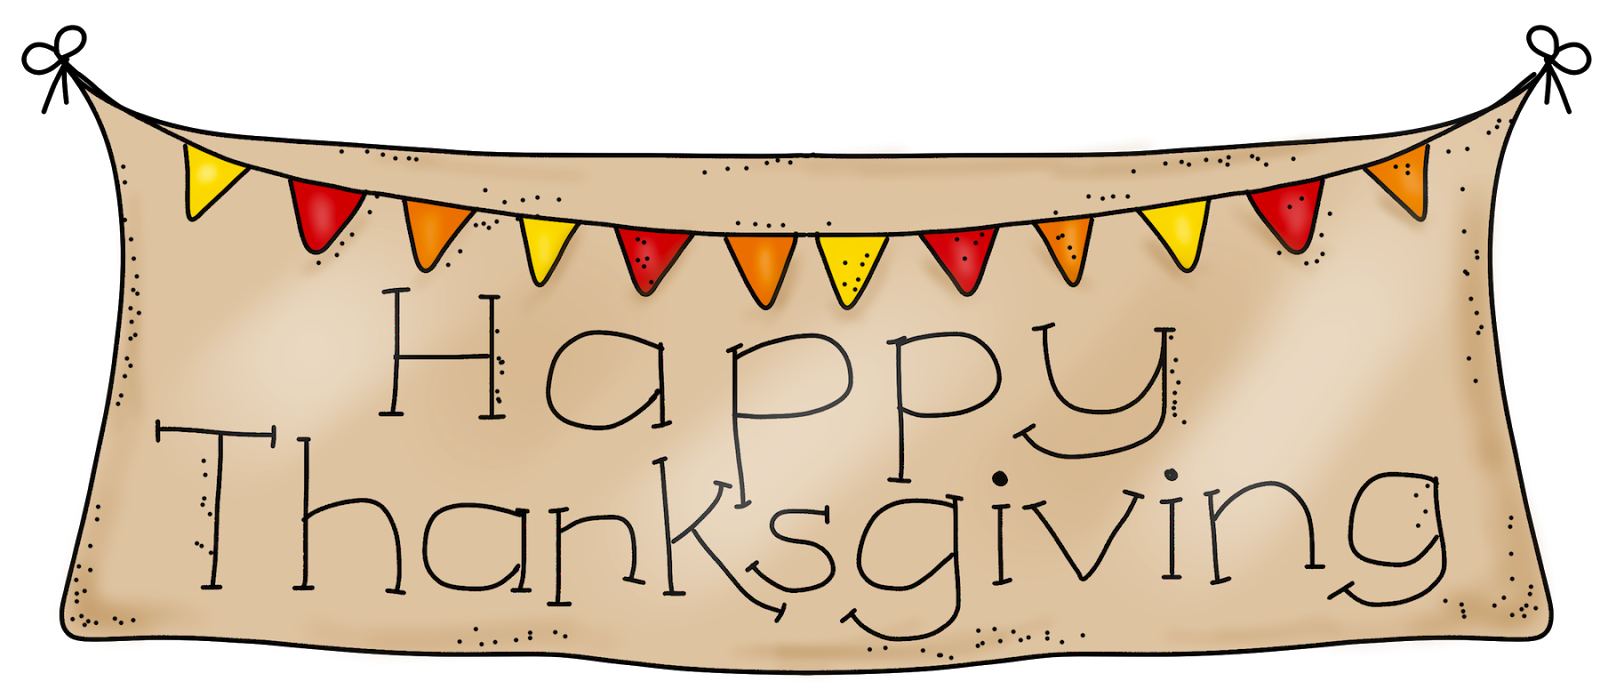 Realtor thanksgiving clipart clipart download 10 Ways To Unplug This Thanksgiving from The Huff Post. Happy Turkey ... clipart download